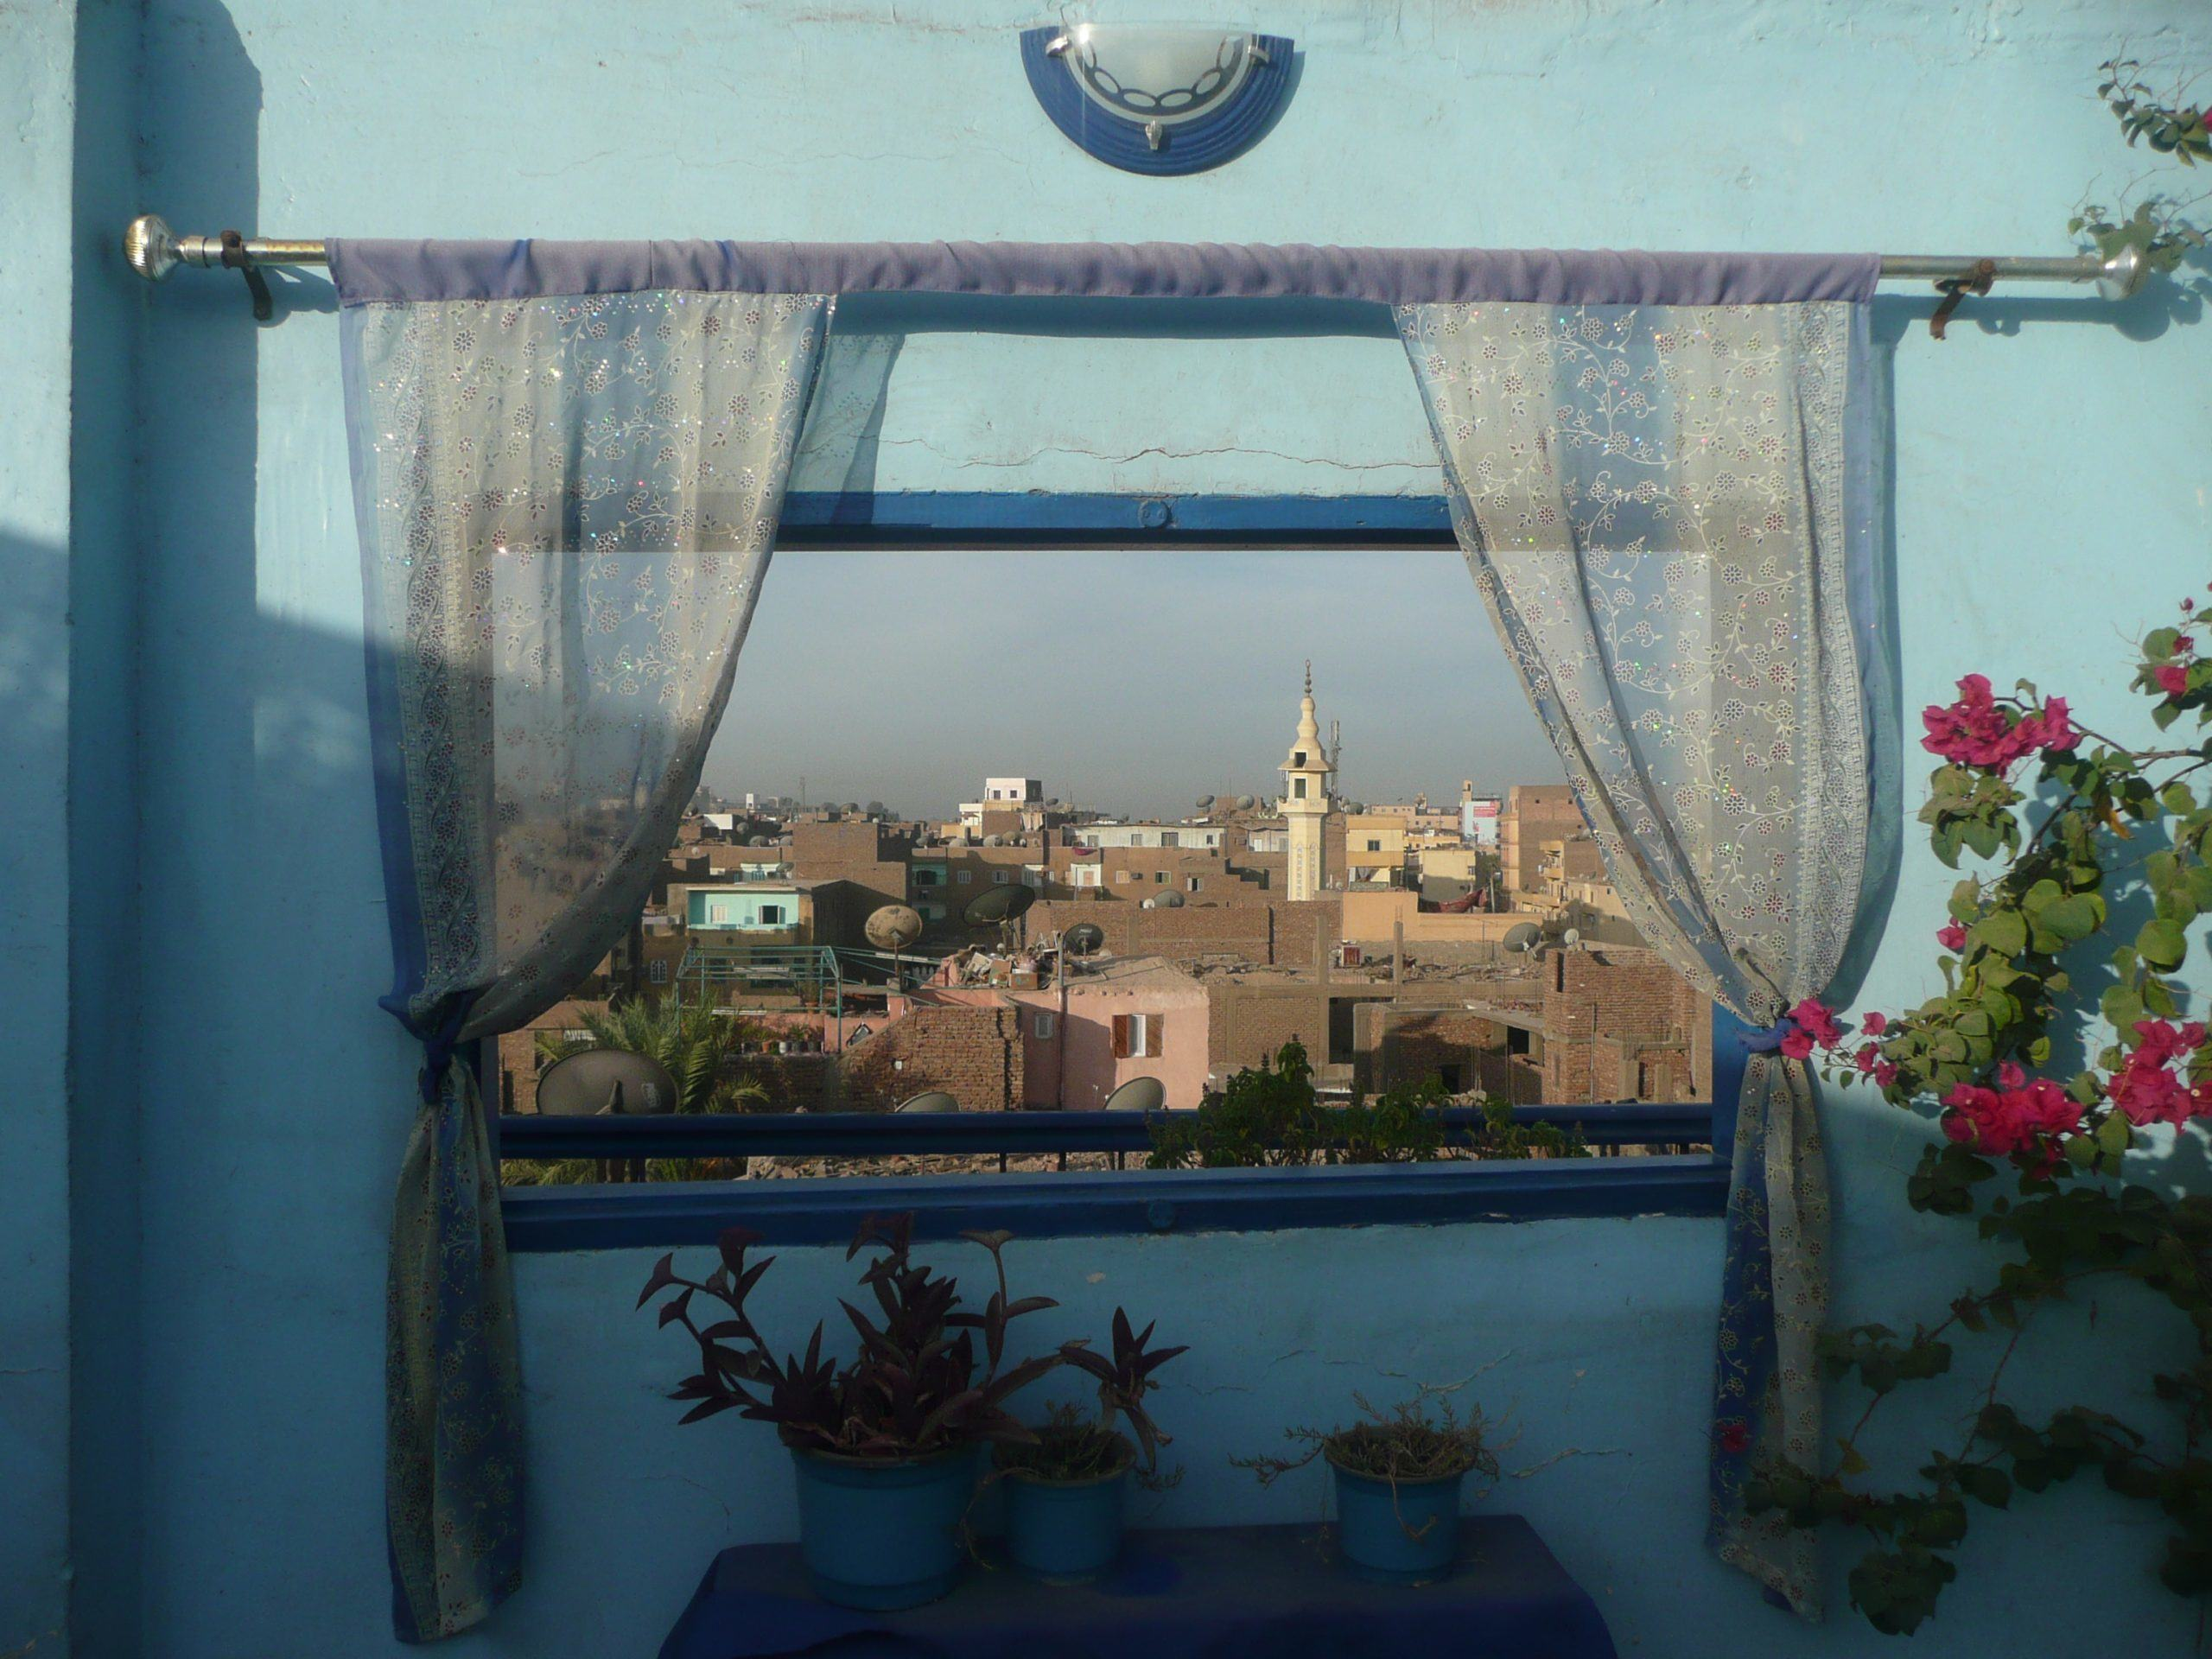 looking through a window into the old buildings of Luxor